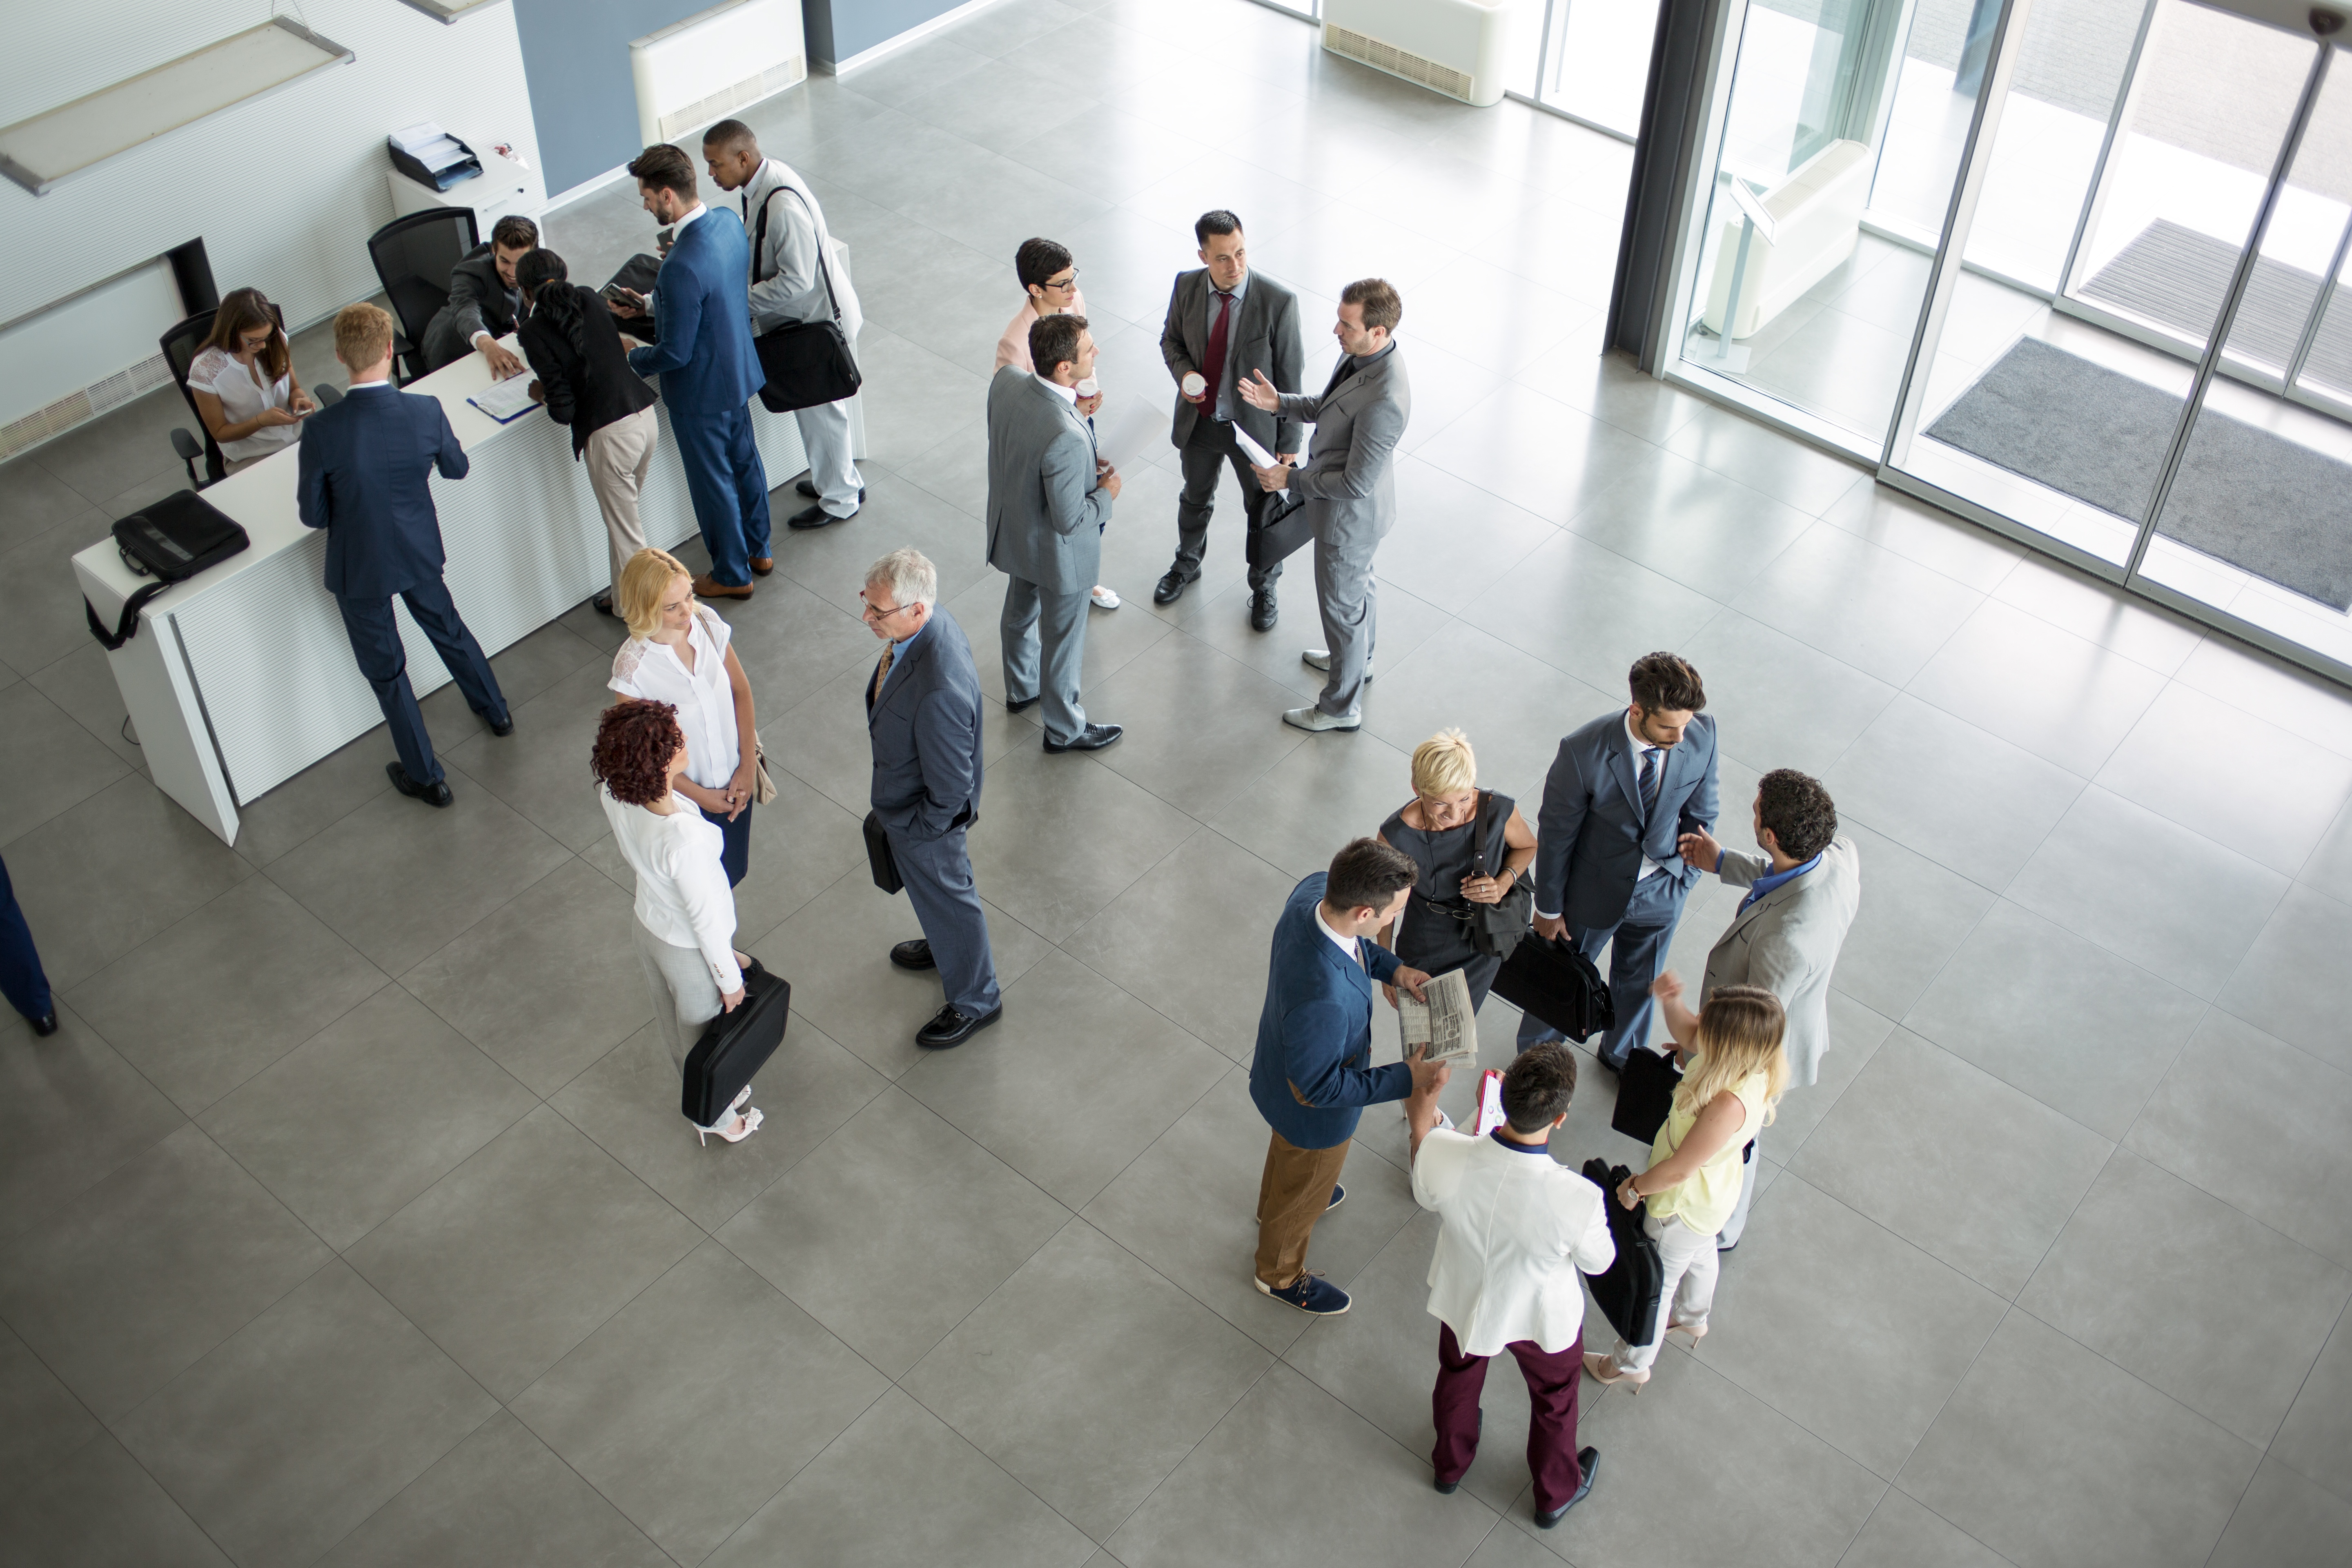 People in the lobby of an office building waiting to go to a Doherty IT event